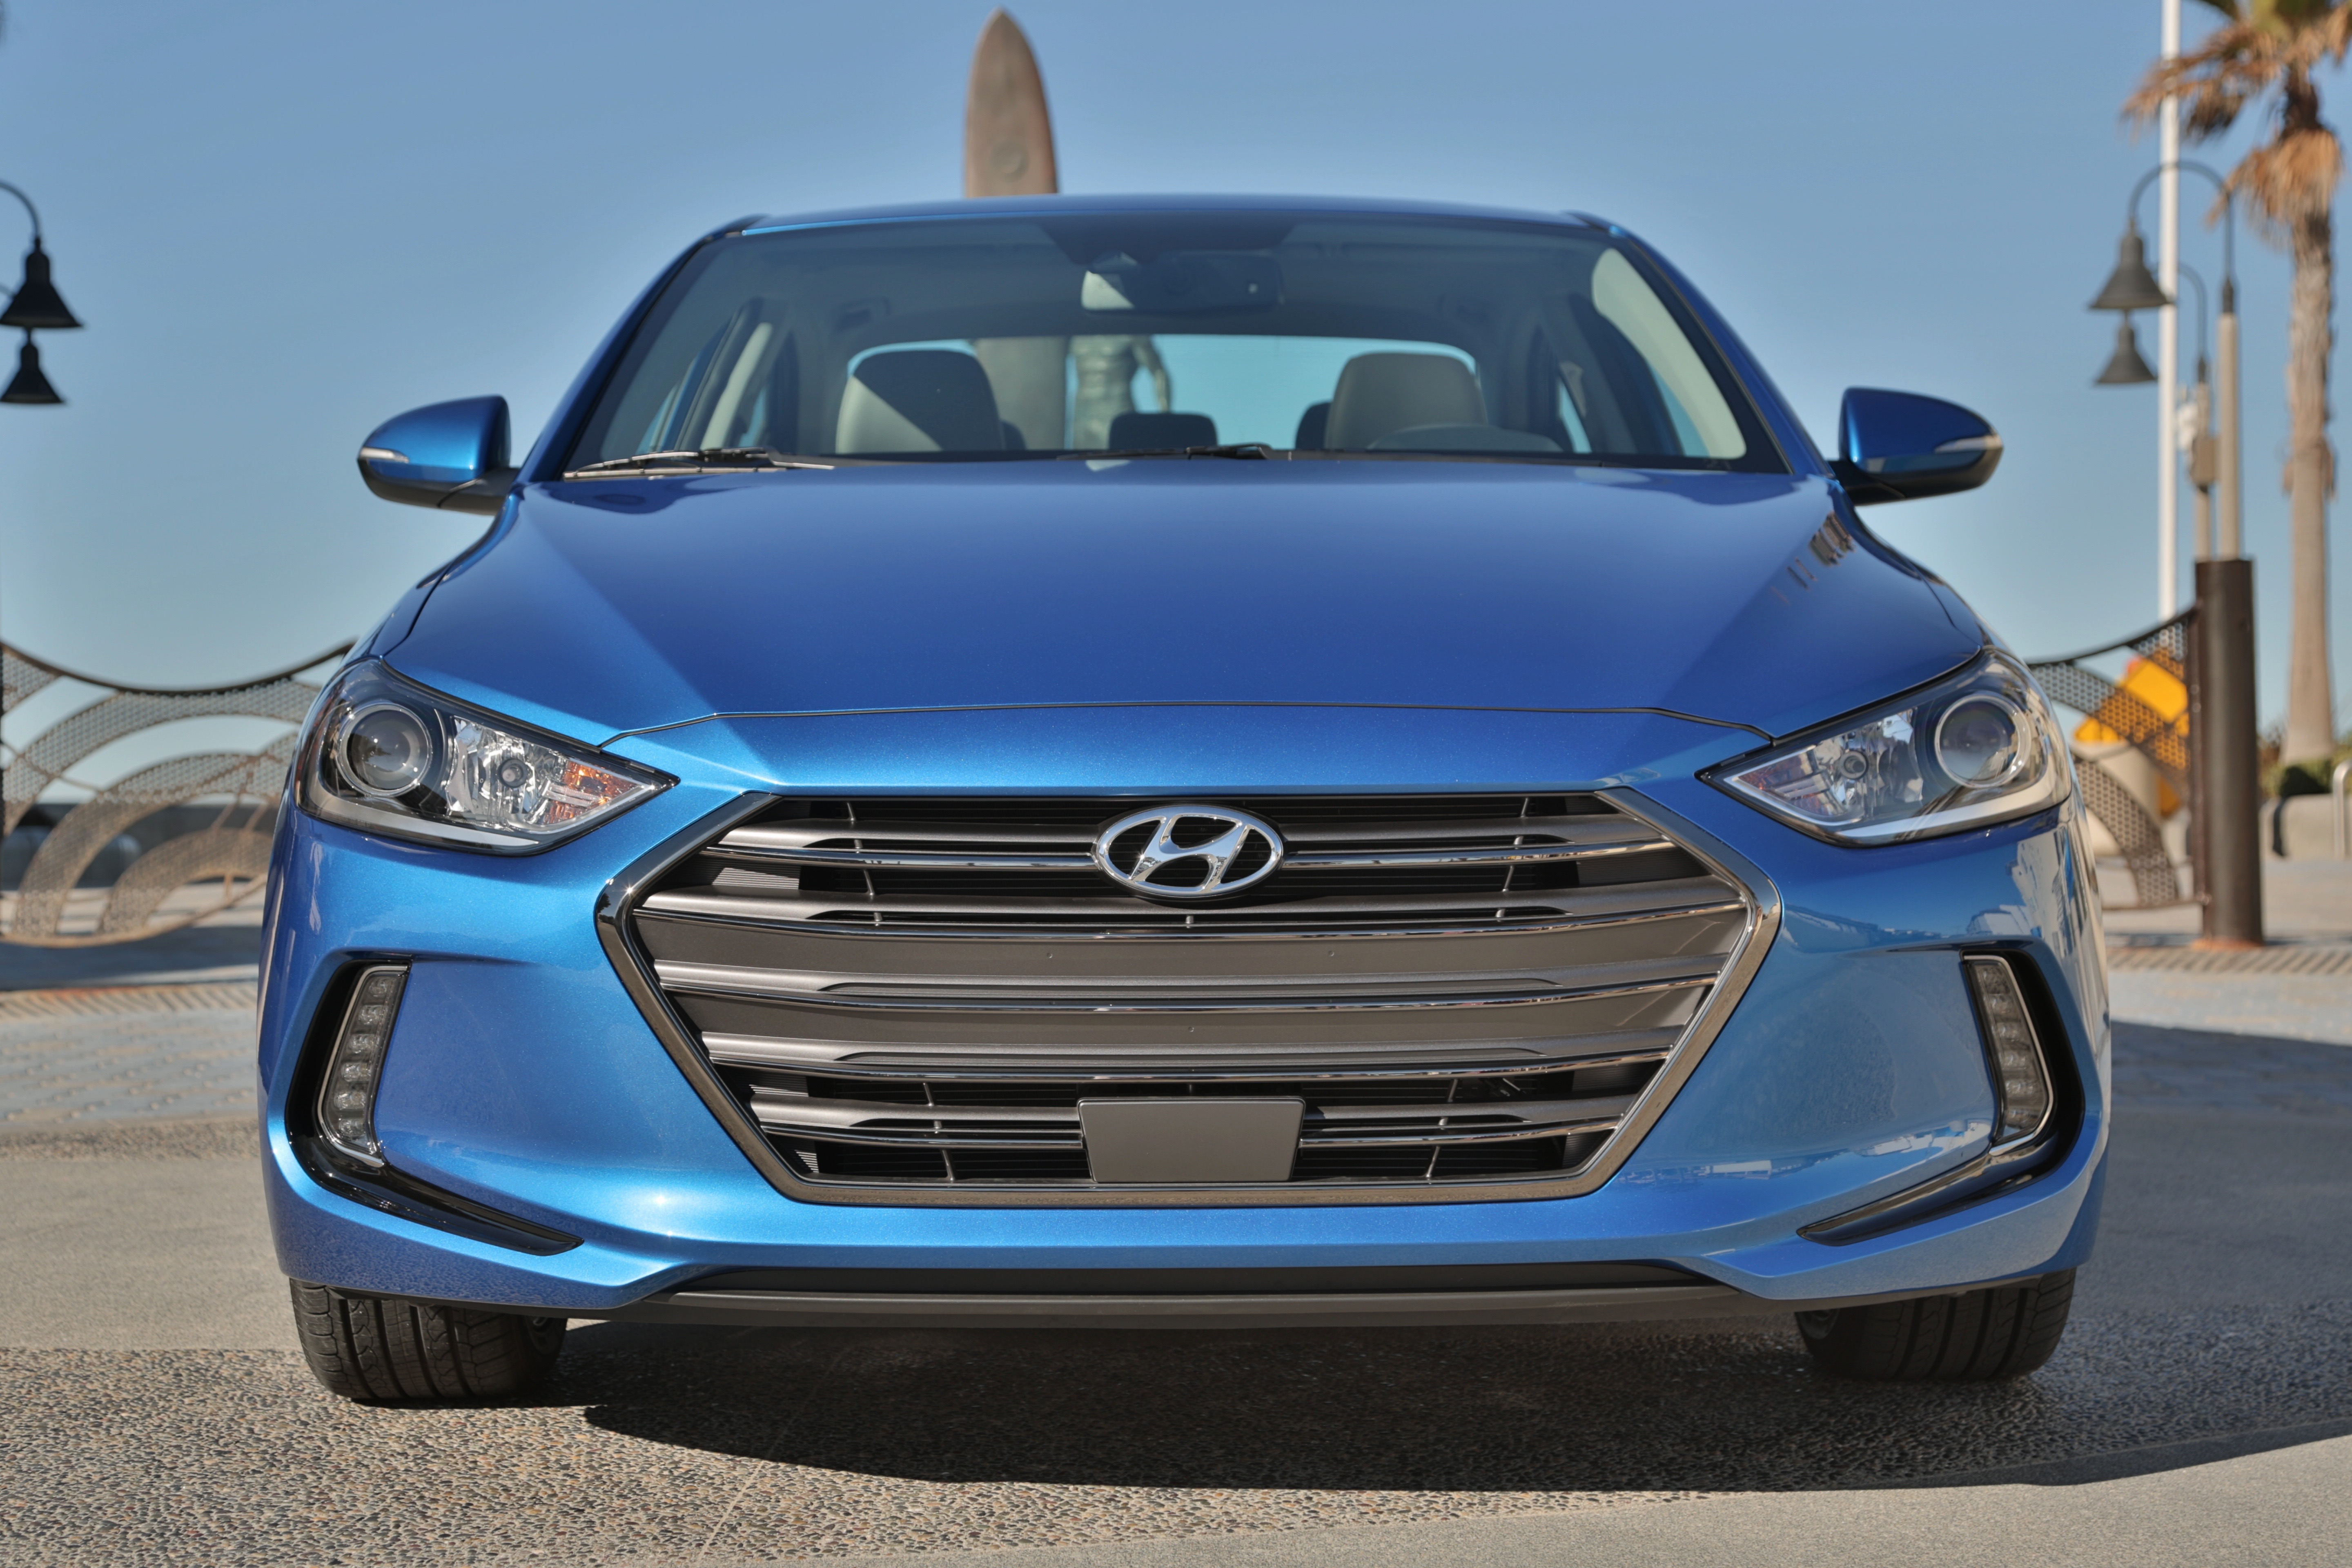 2017 hyundai elantra value edition features best new cars for 2018. Black Bedroom Furniture Sets. Home Design Ideas